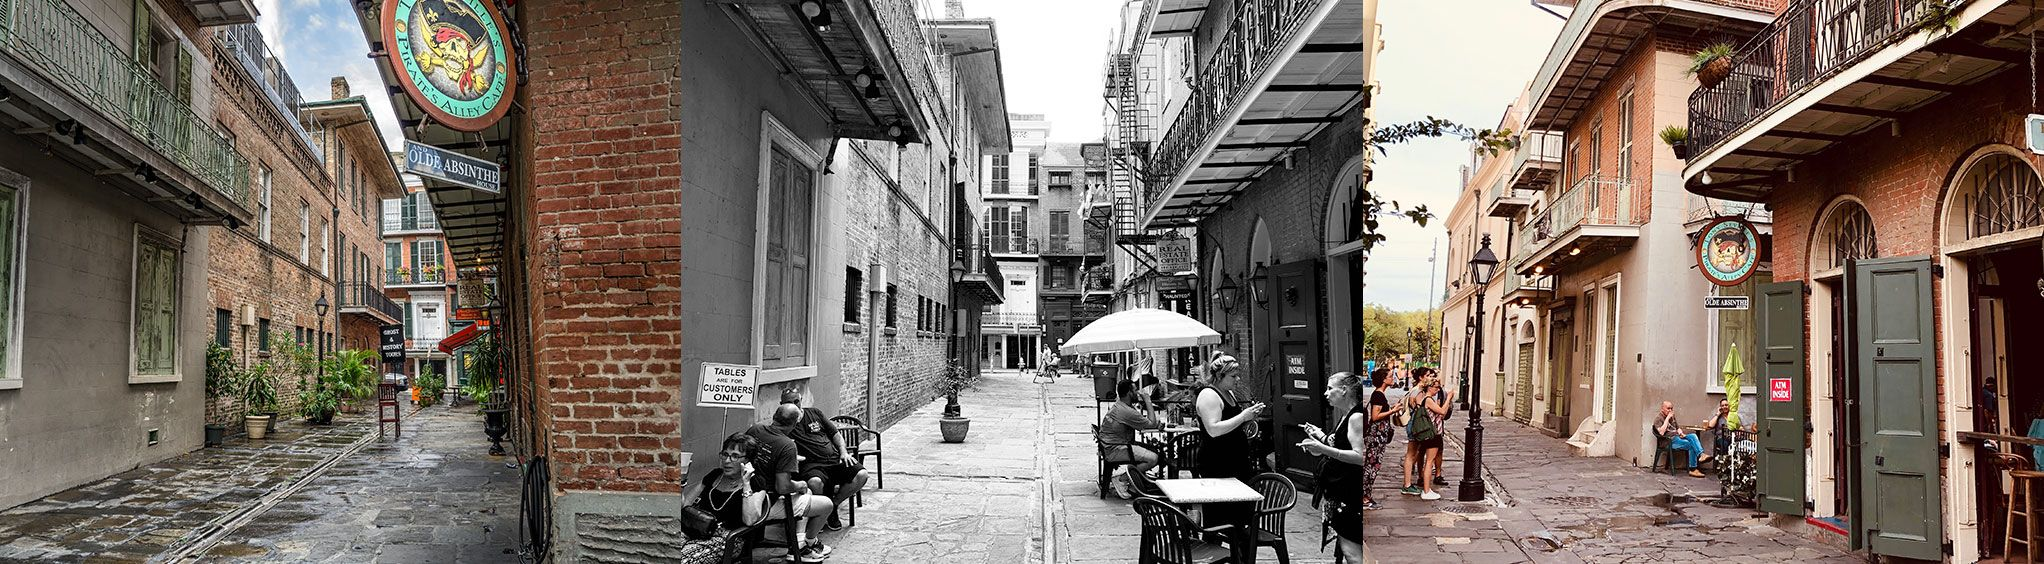 Pirate's Alley in New Orleans, LA